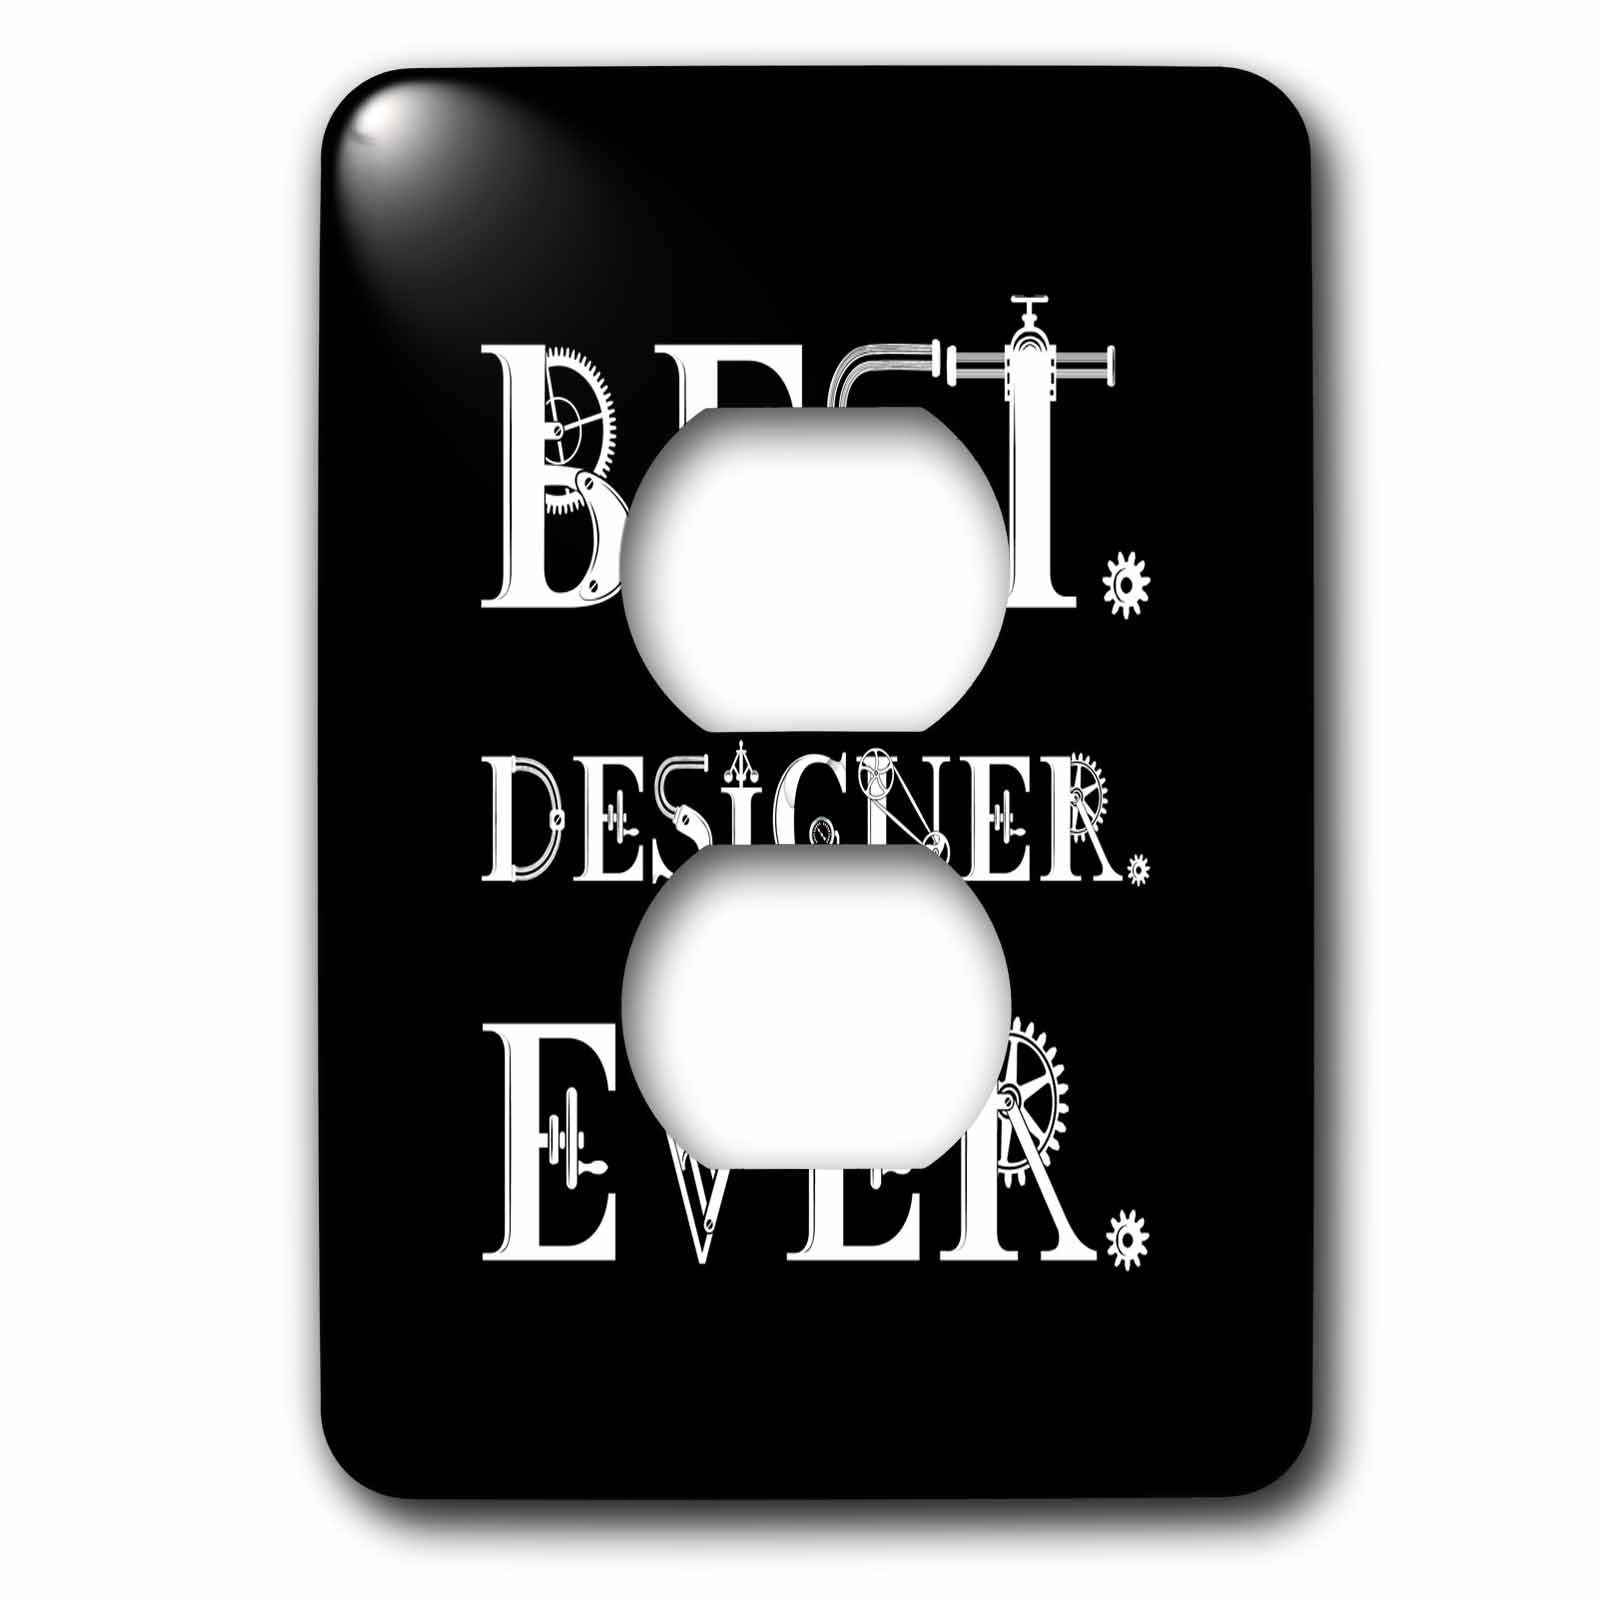 3dRose Alexis Design - Best Professional Ever - Best. Designer. Ever. decorative text on background black - Light Switch Covers - 2 plug outlet cover (lsp_286098_6)